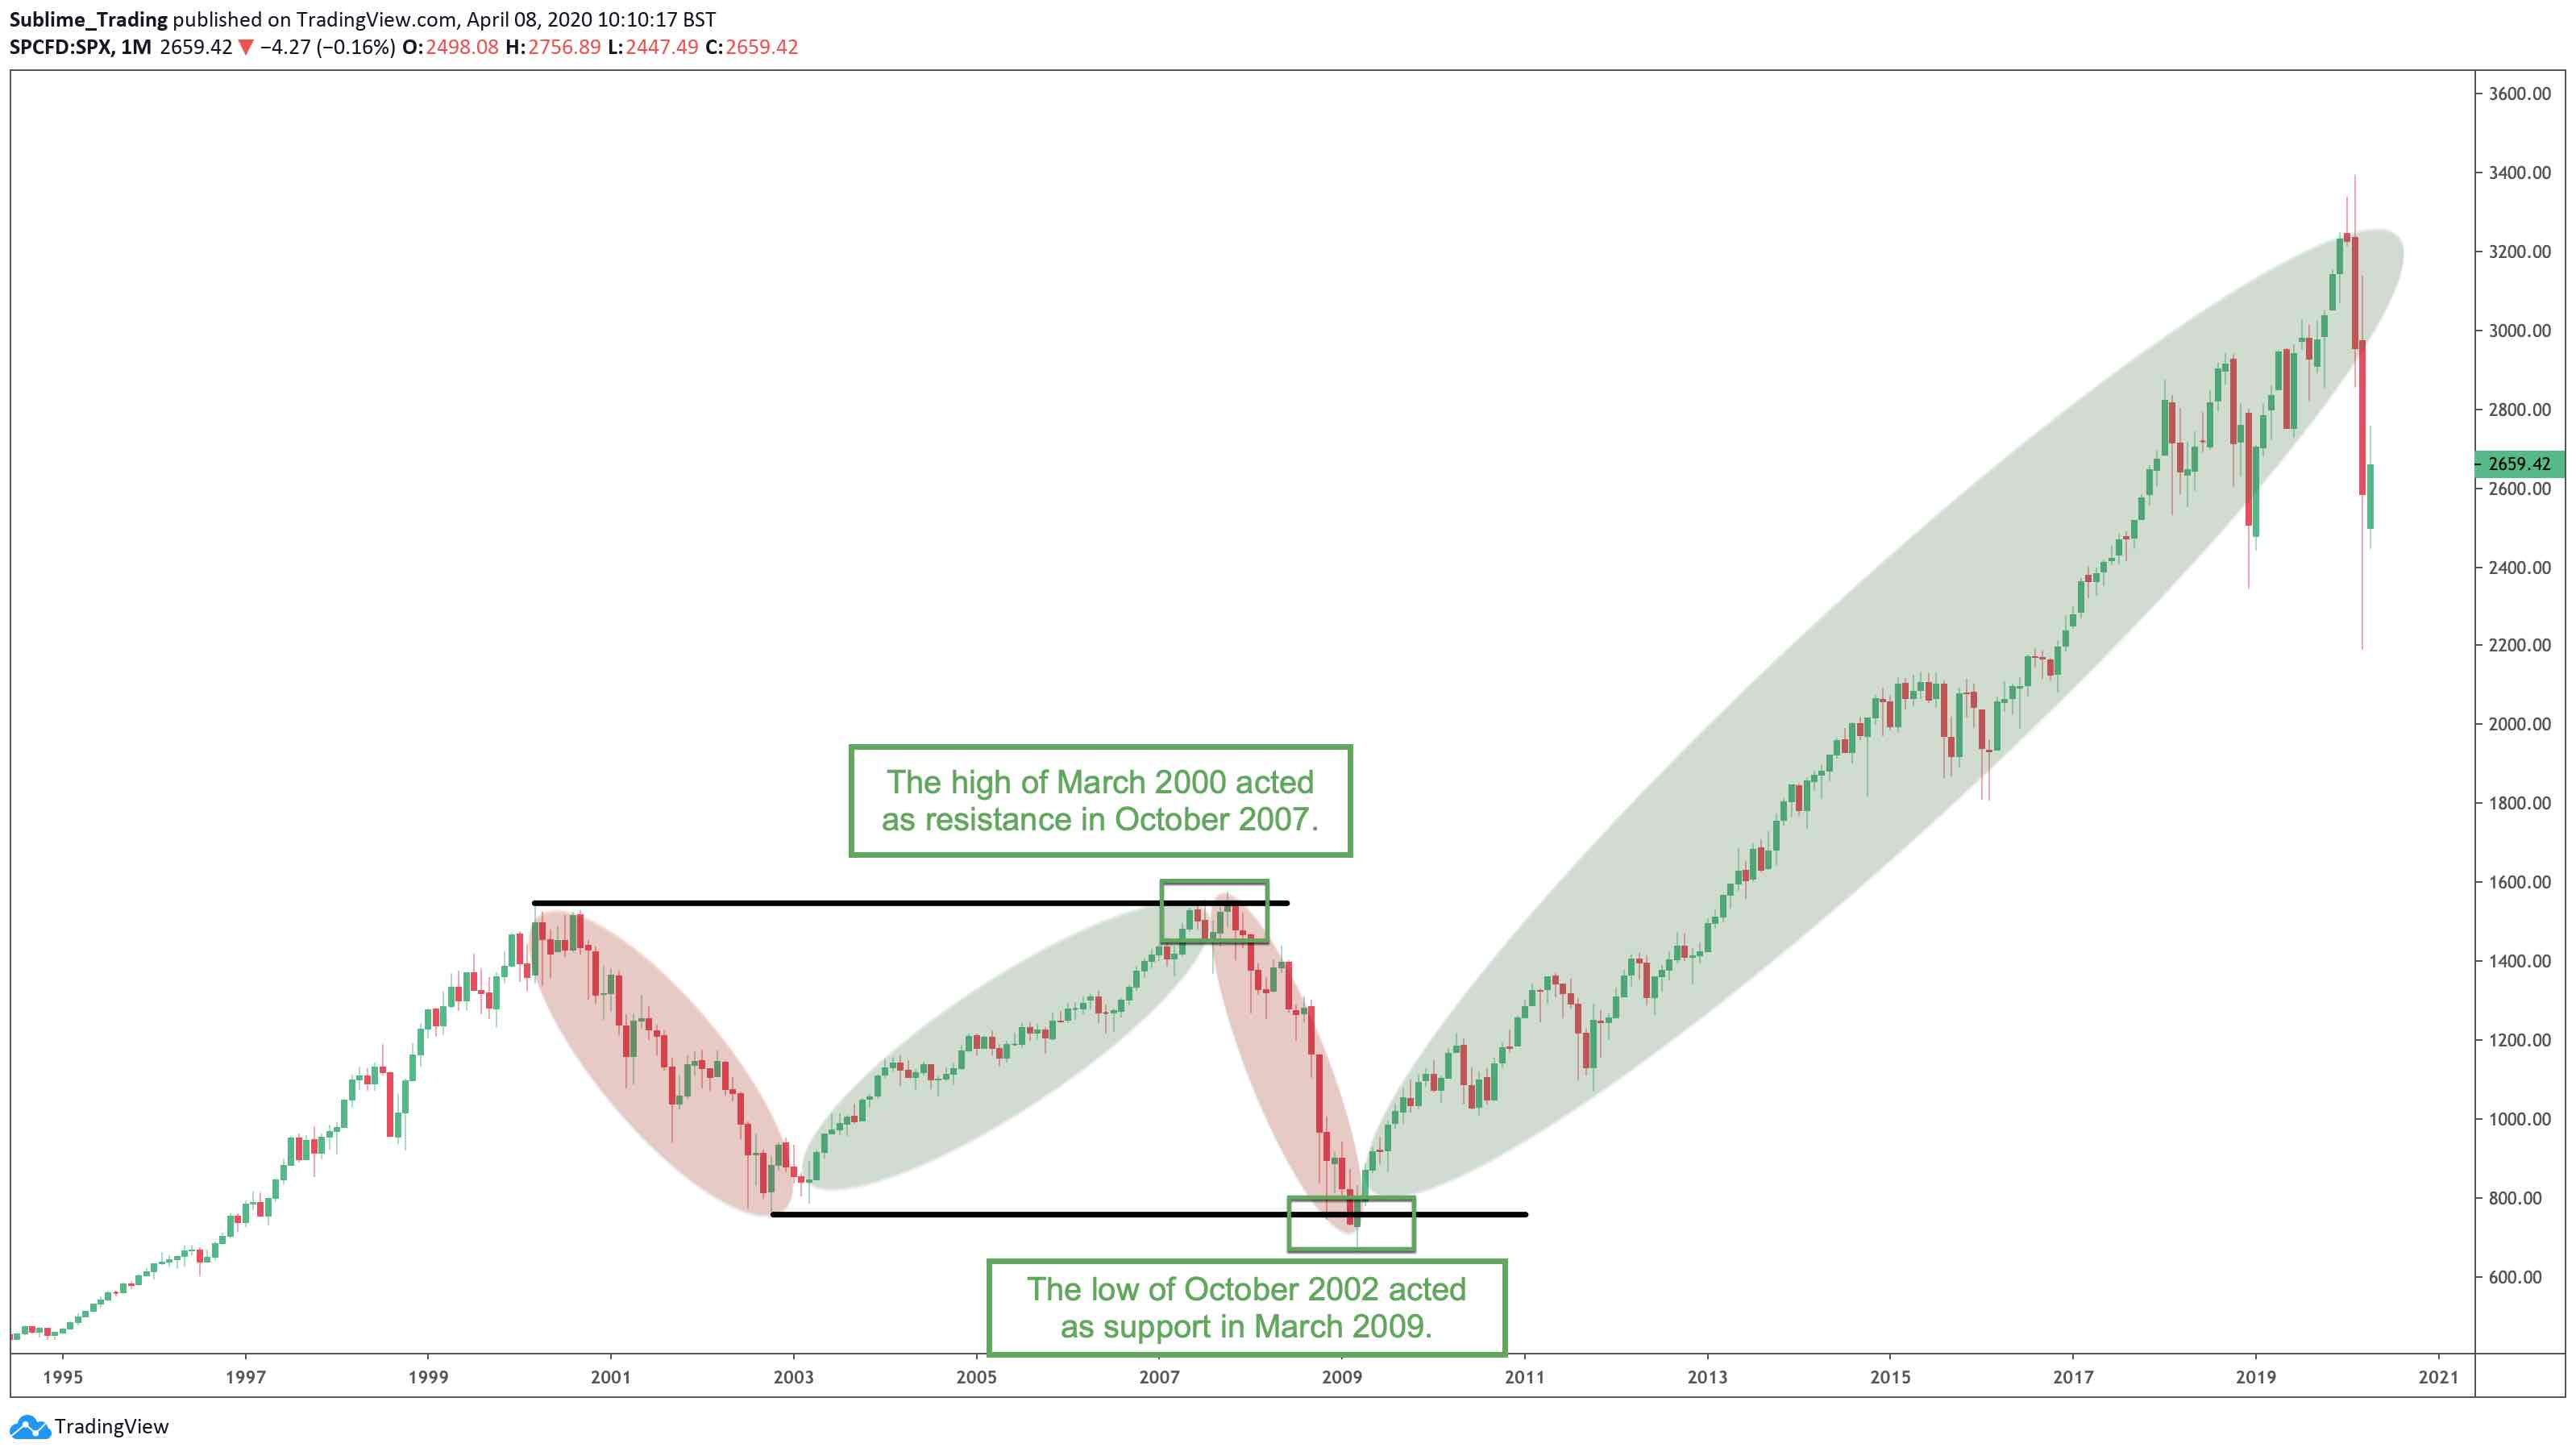 The S&P 500 displaying cycles during bull and bear market conditions.